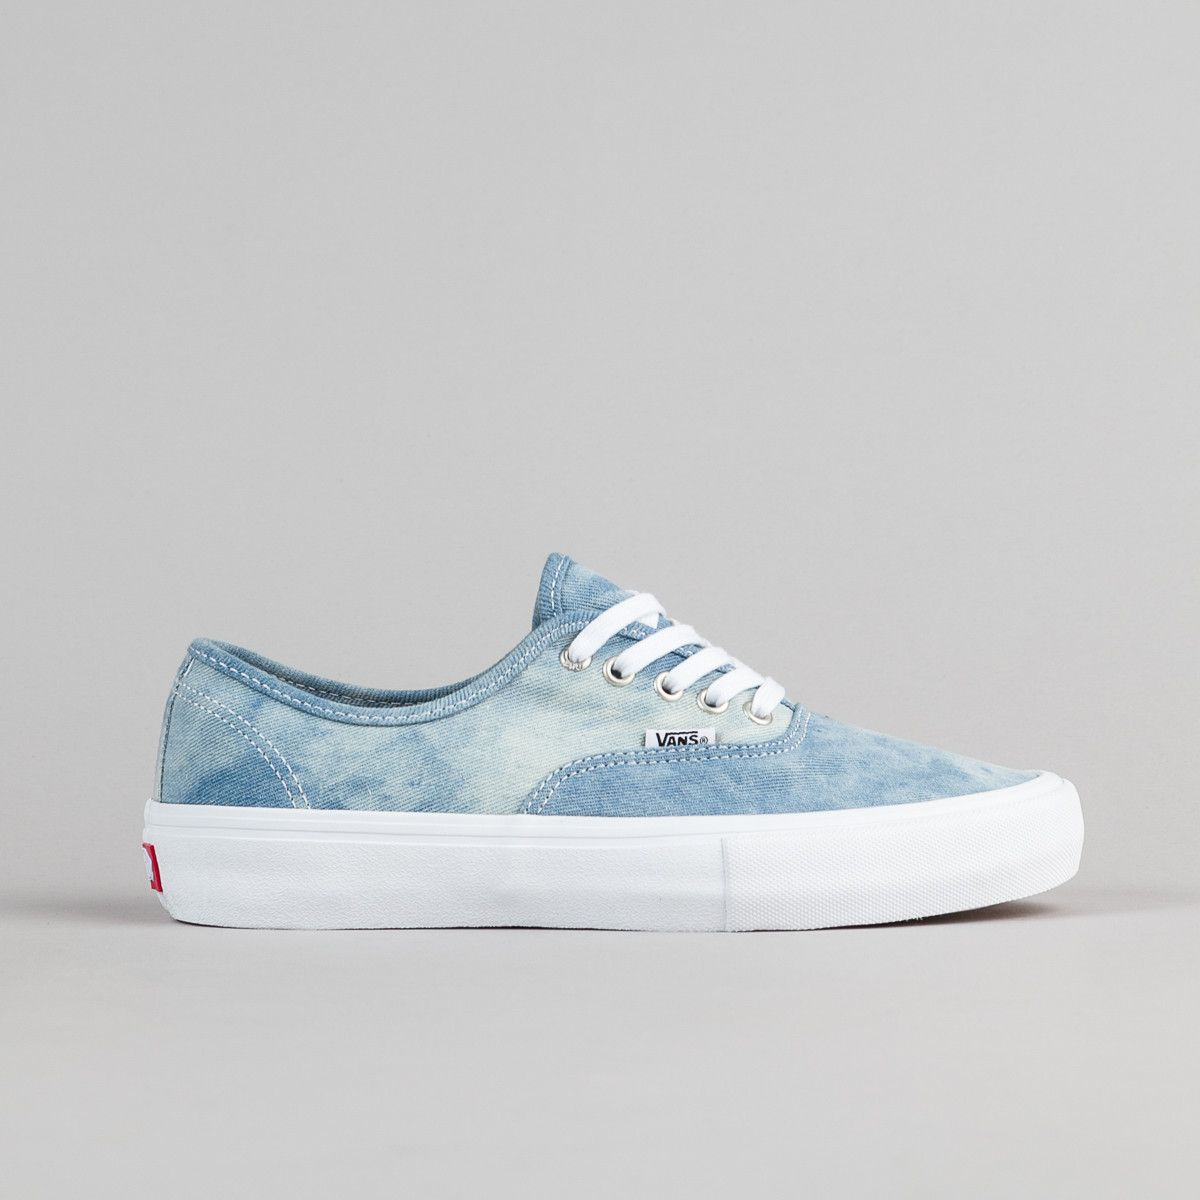 946758258cd6 Vans Authentic Pro Shoes - Denim   White